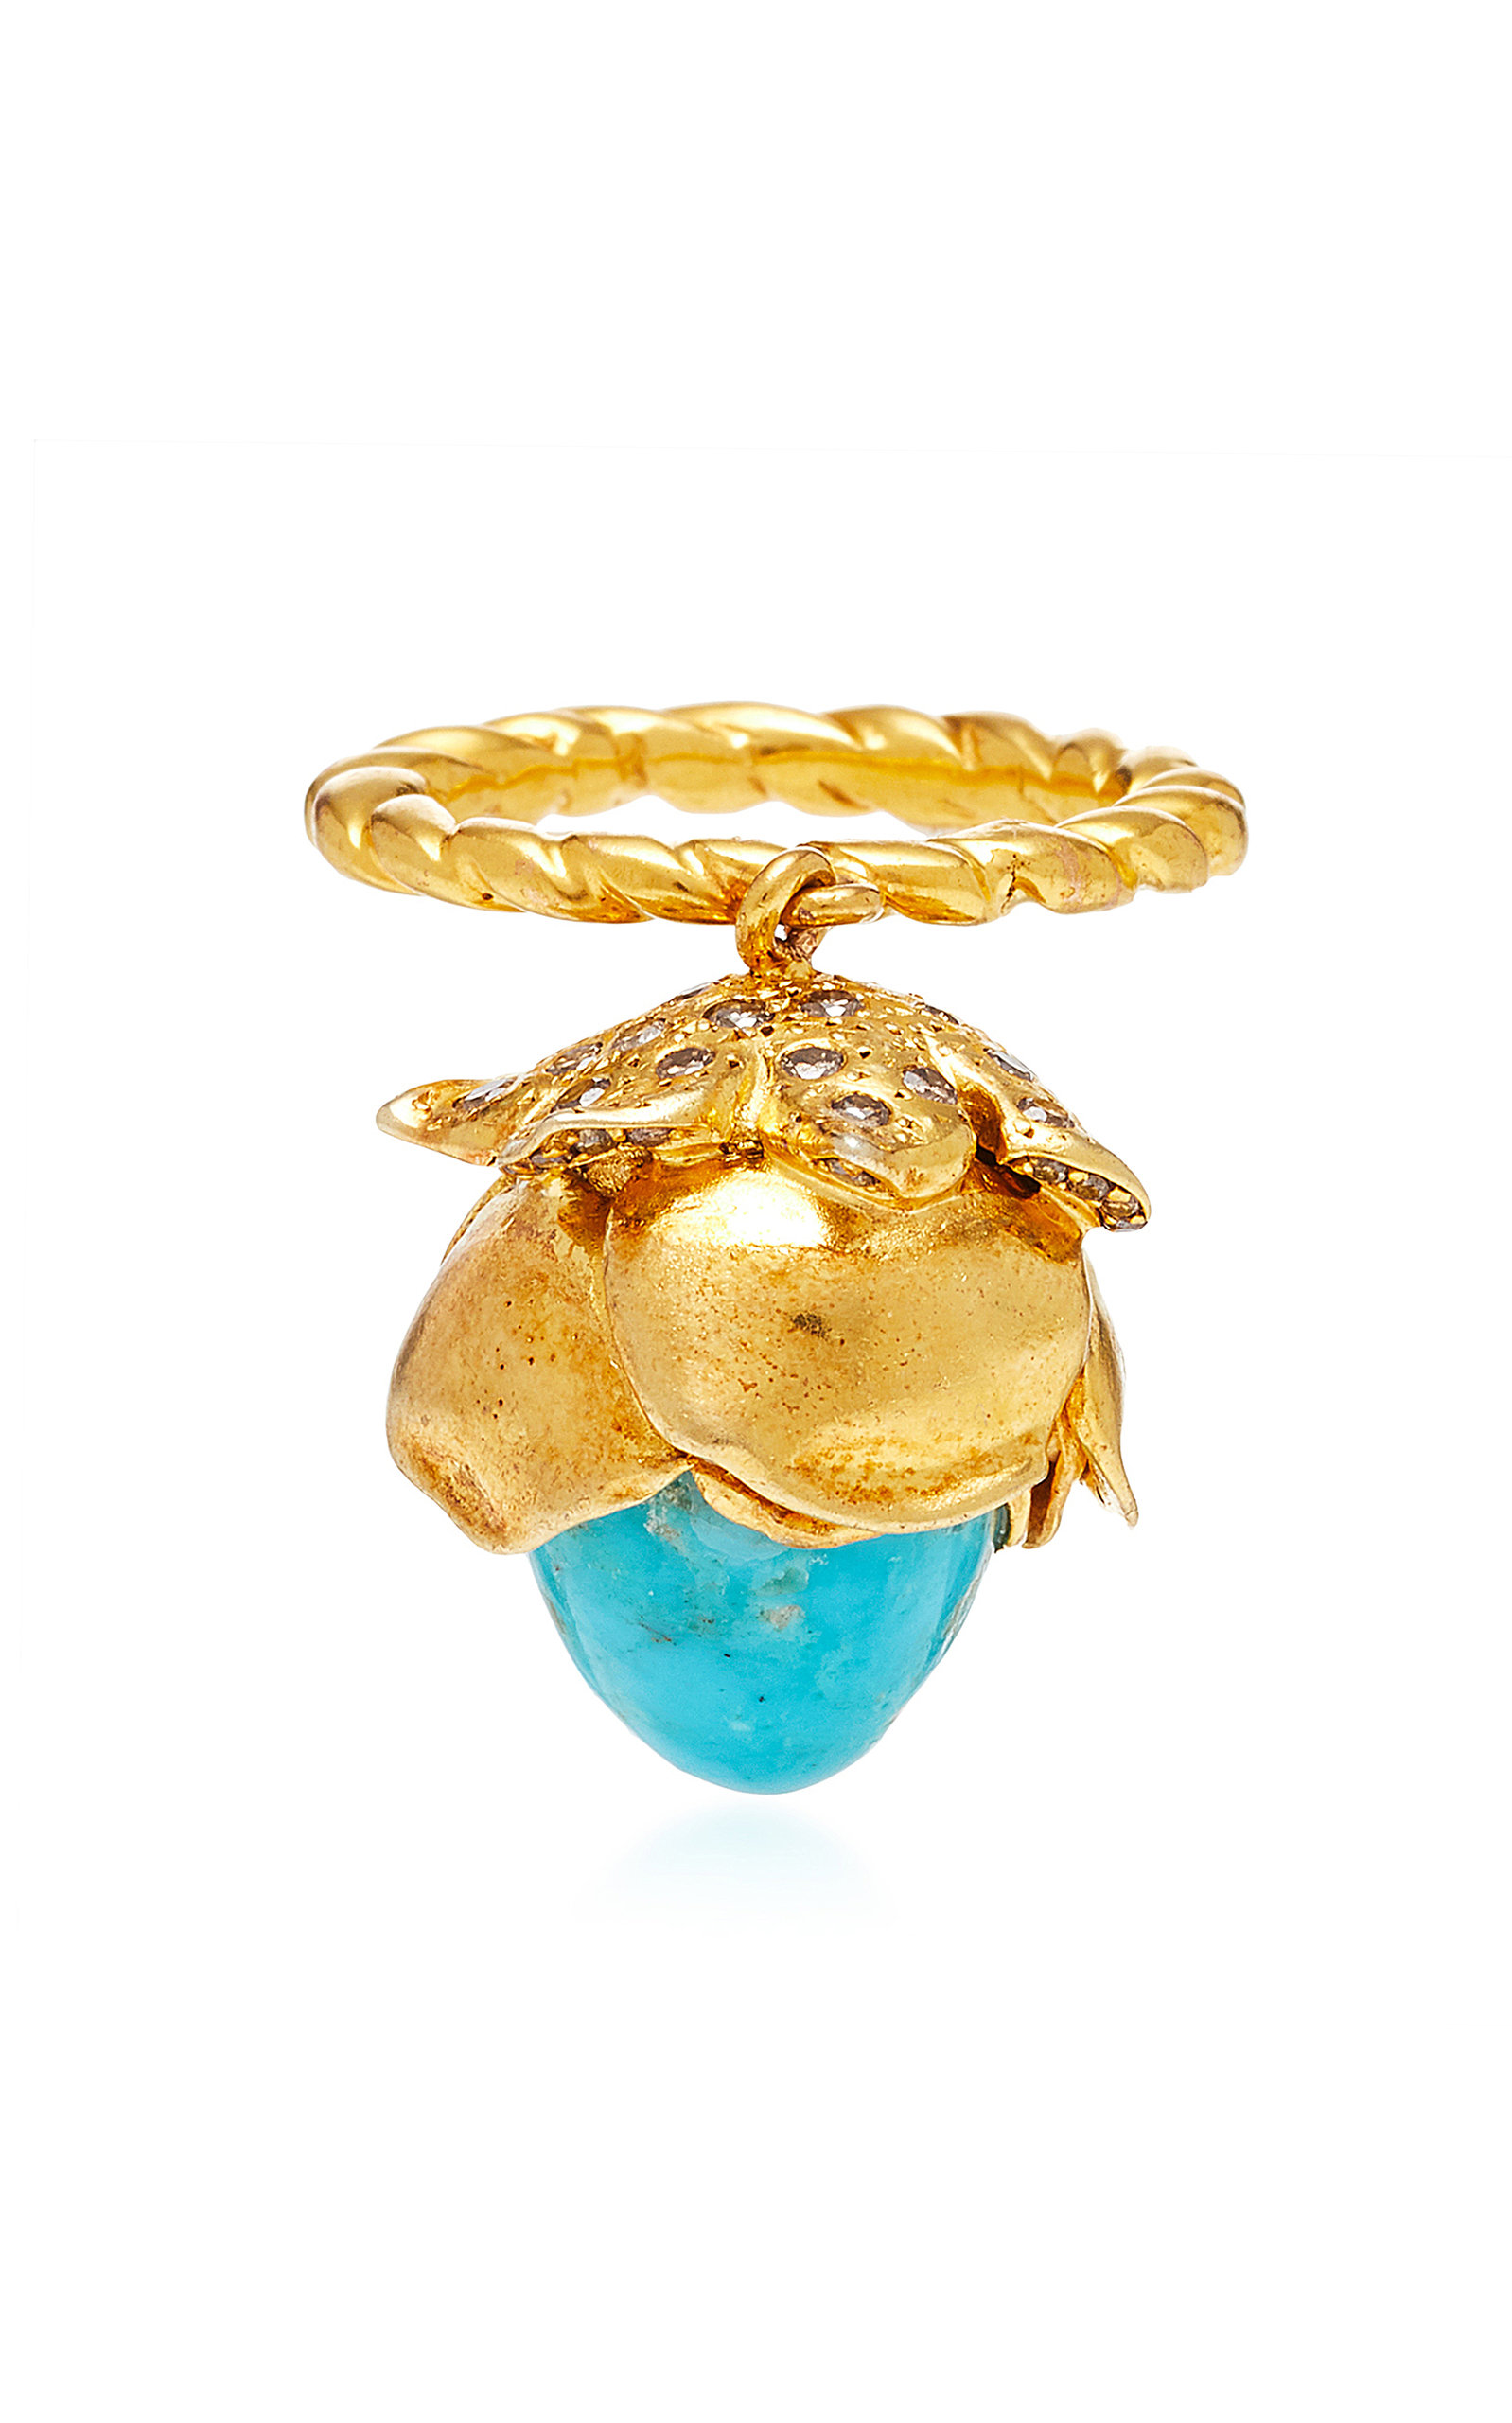 ONE-OF-A-KIND MOBILE TURQUOISE FLOWER RING